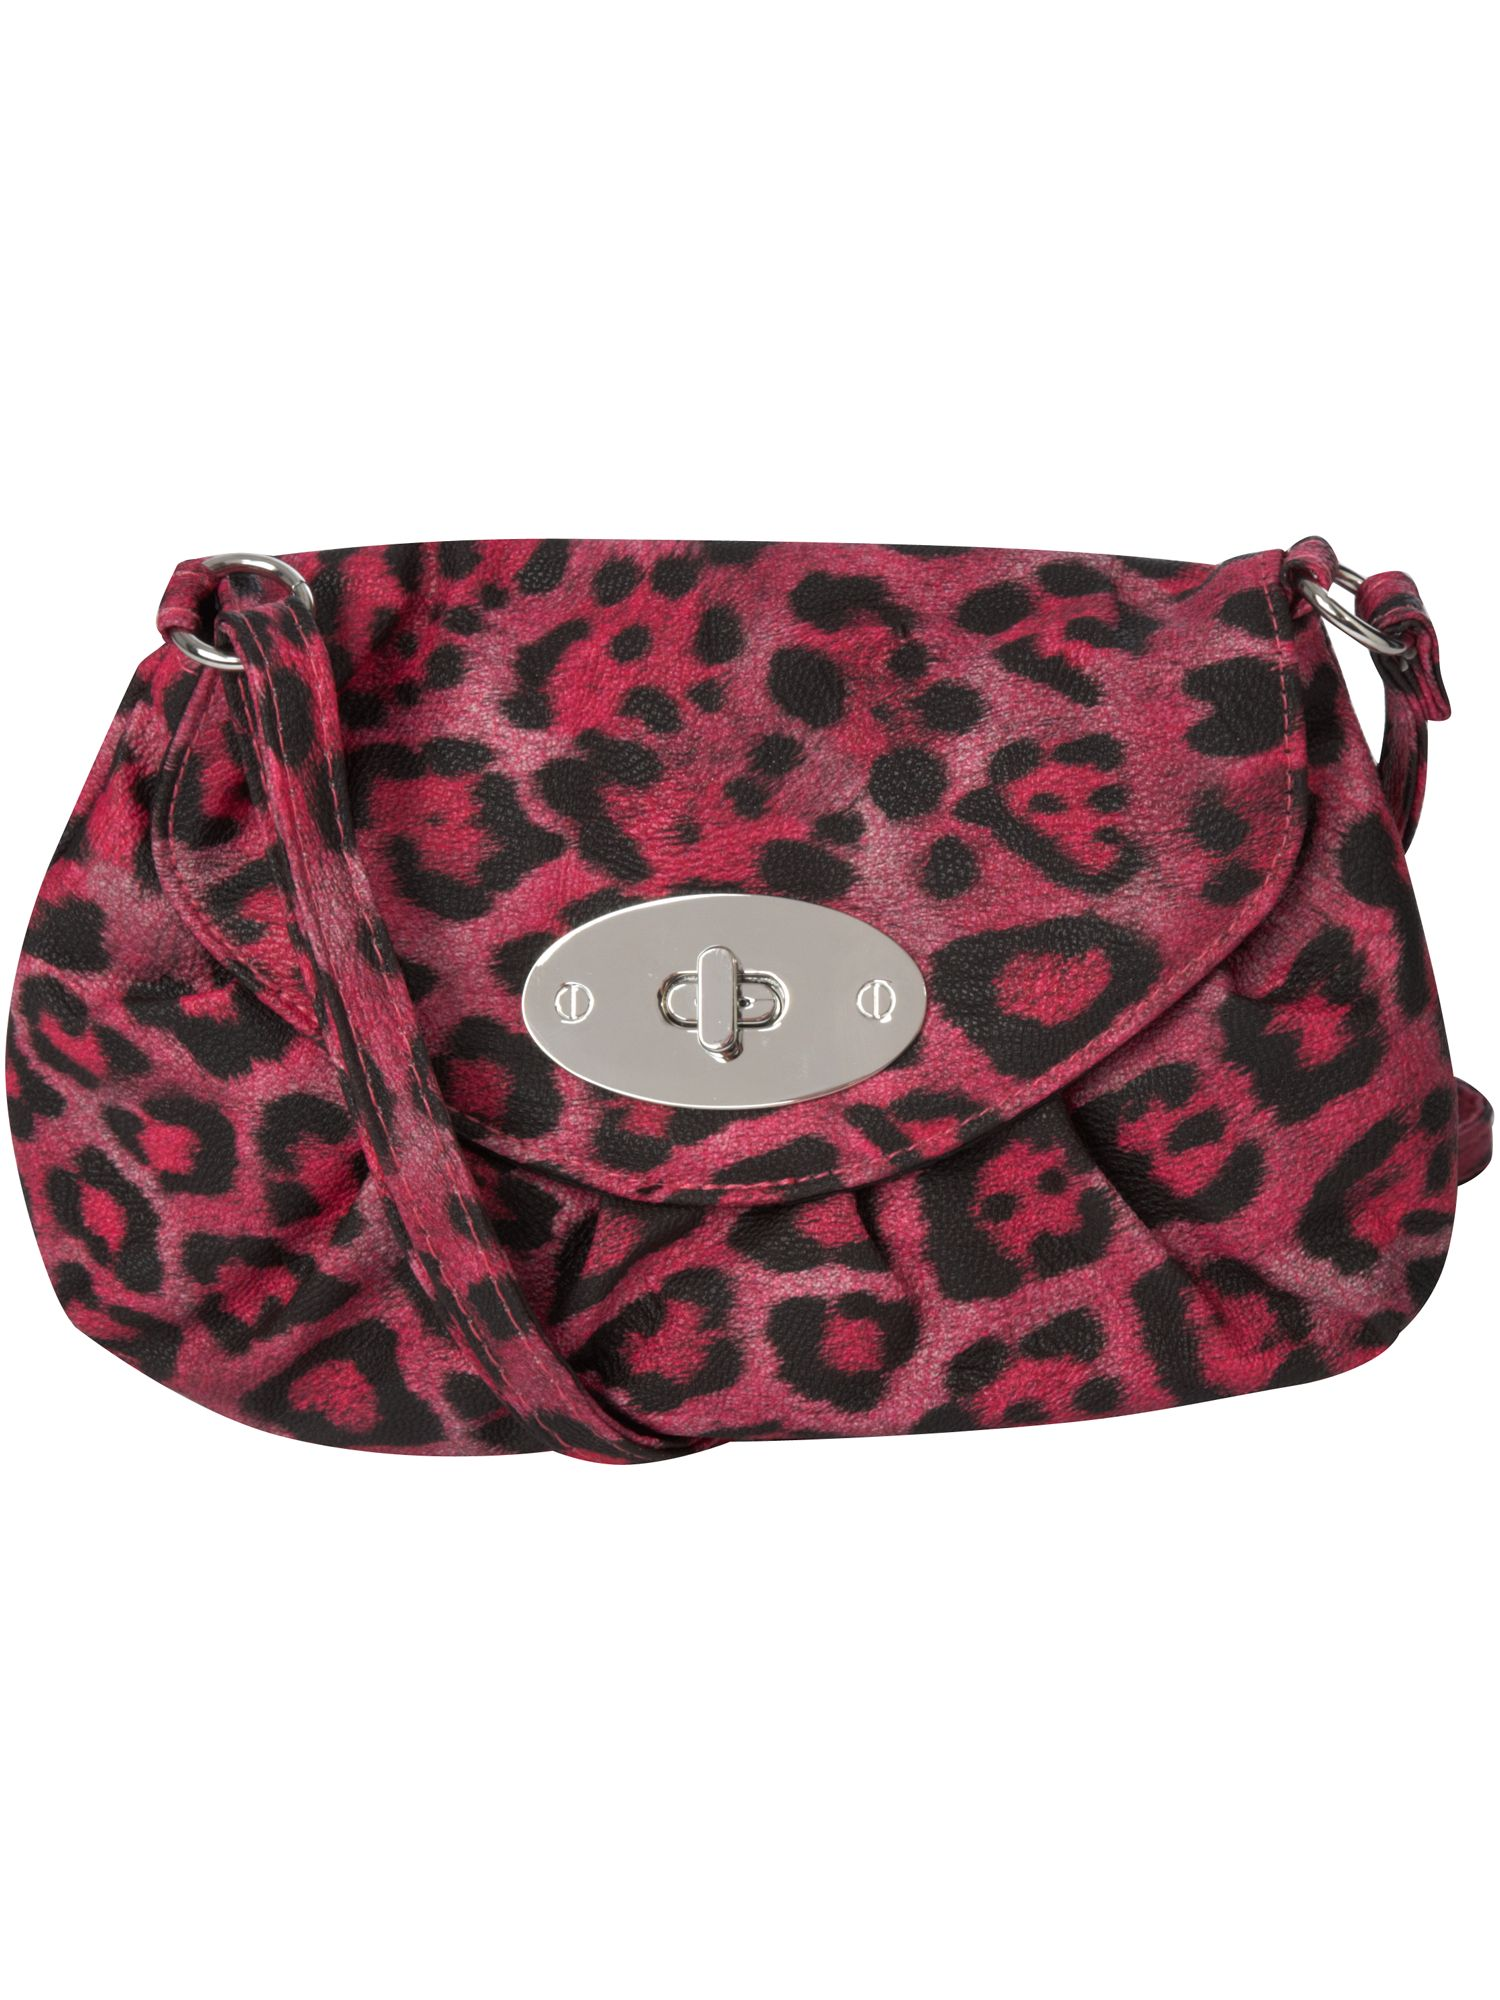 Therapy Pageant Princess animal print cross body bag product image